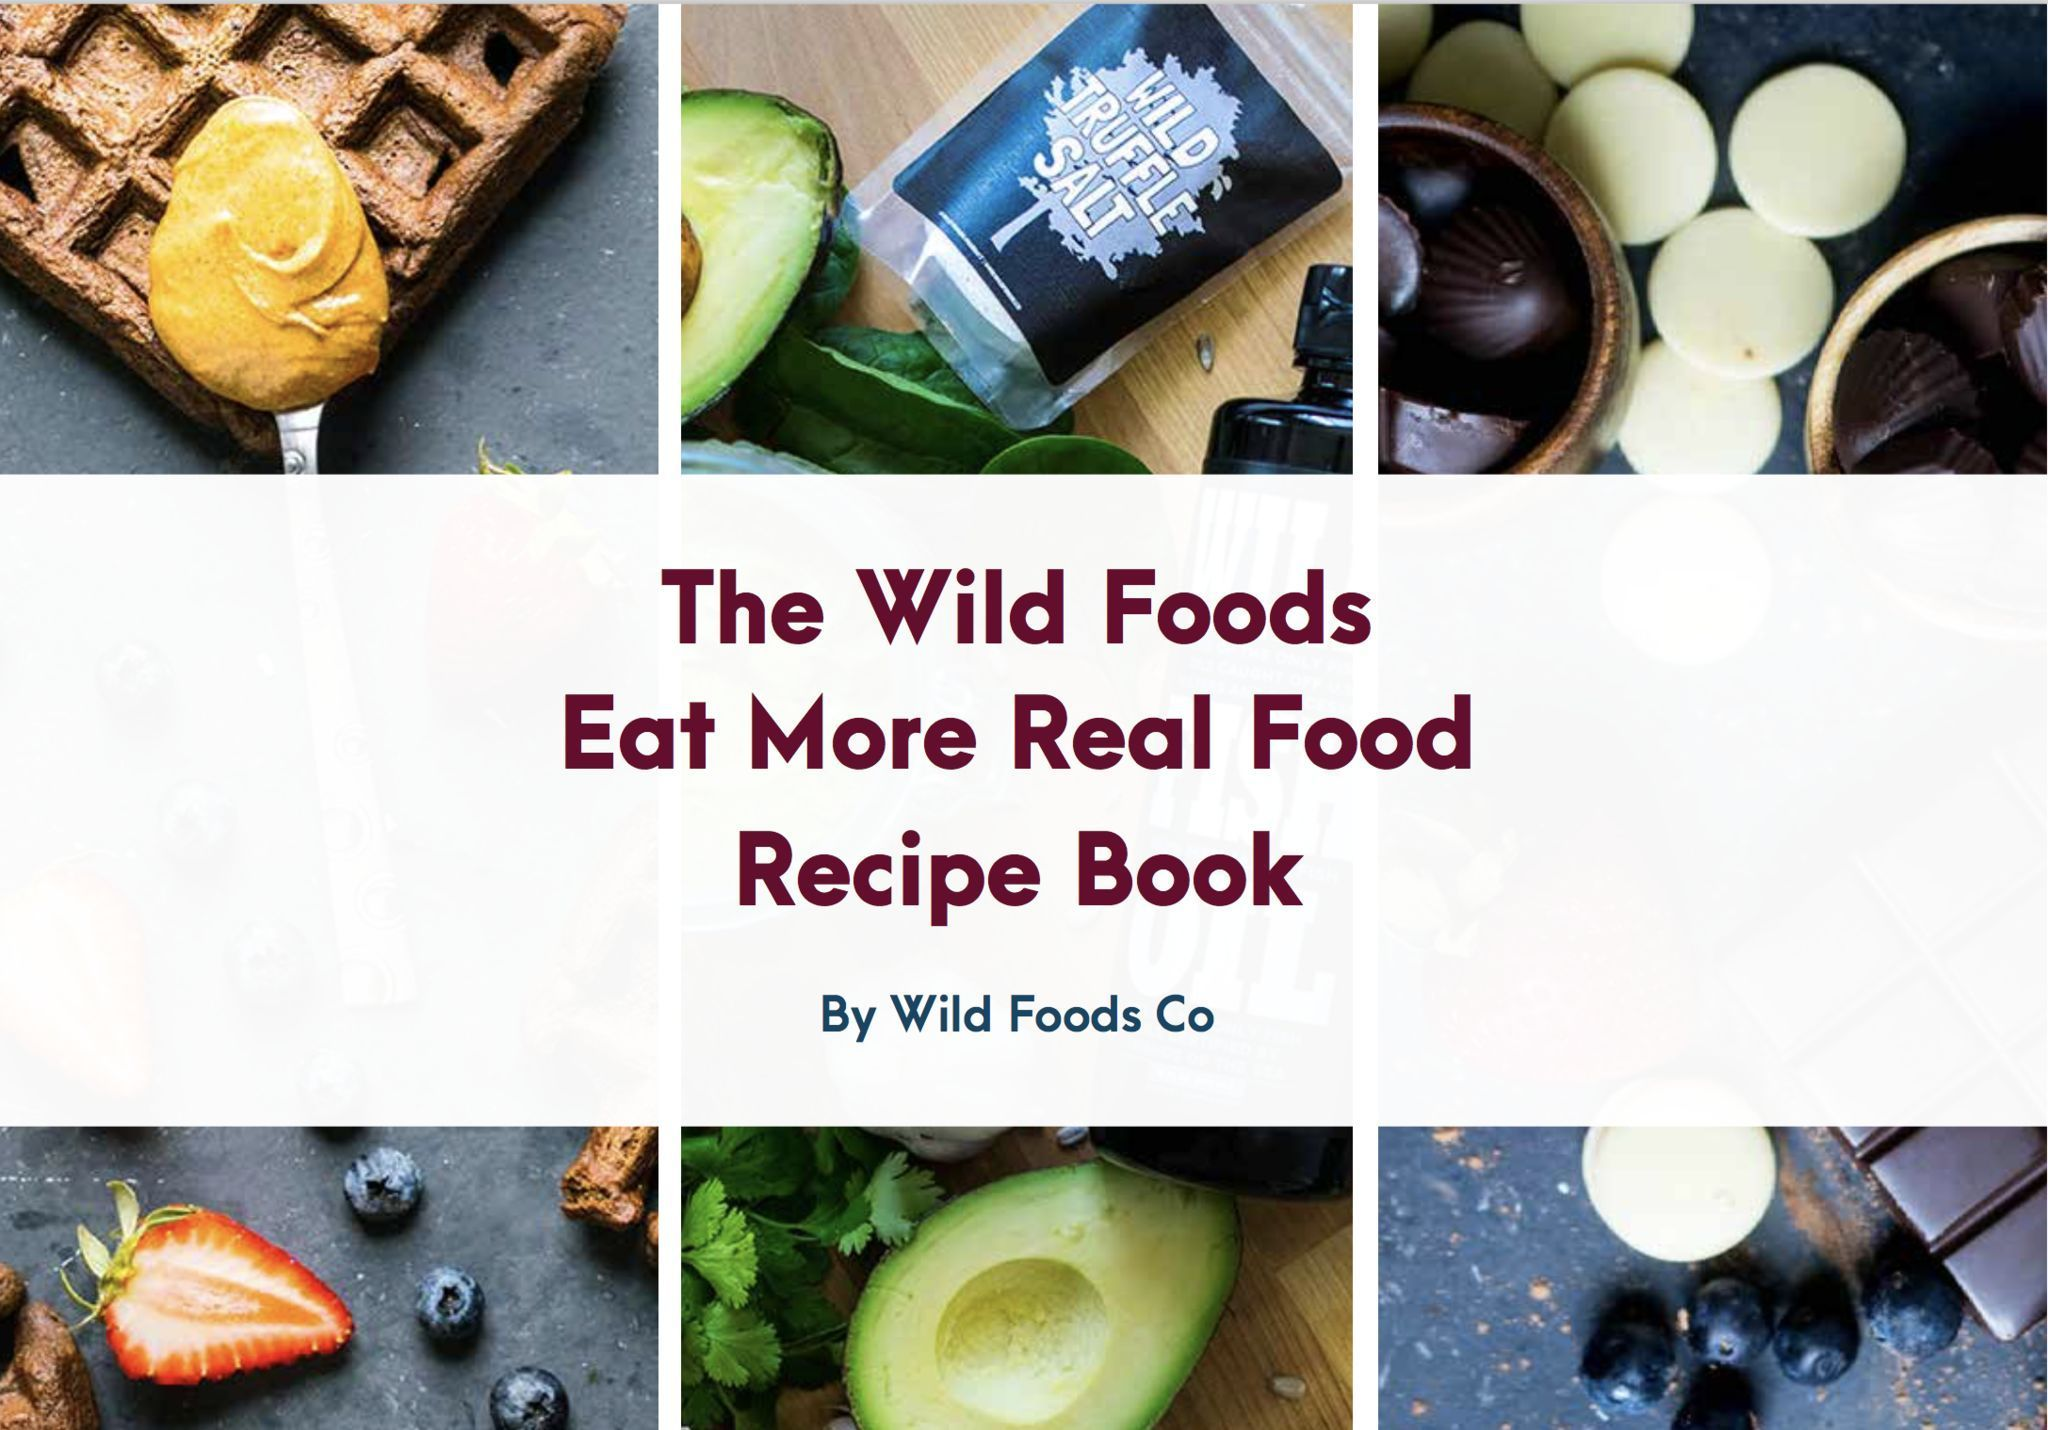 Hot off the presses download the brand new eat more real food download the brand new eat more real food recipe forumfinder Choice Image